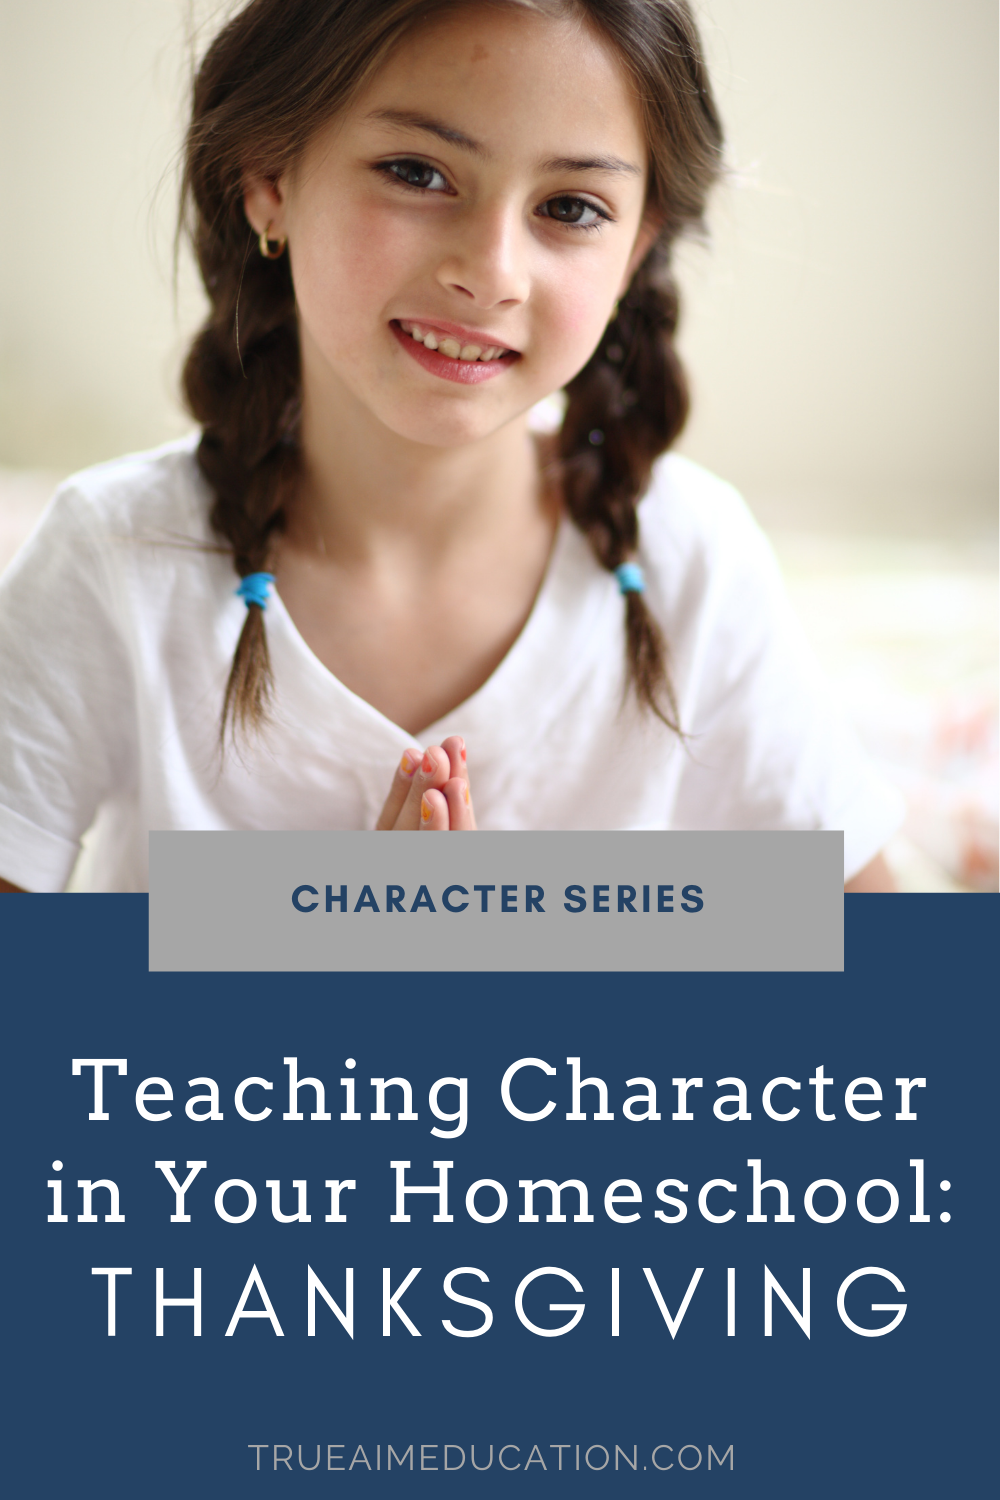 Teaching character in your homeschool - thanksgiving